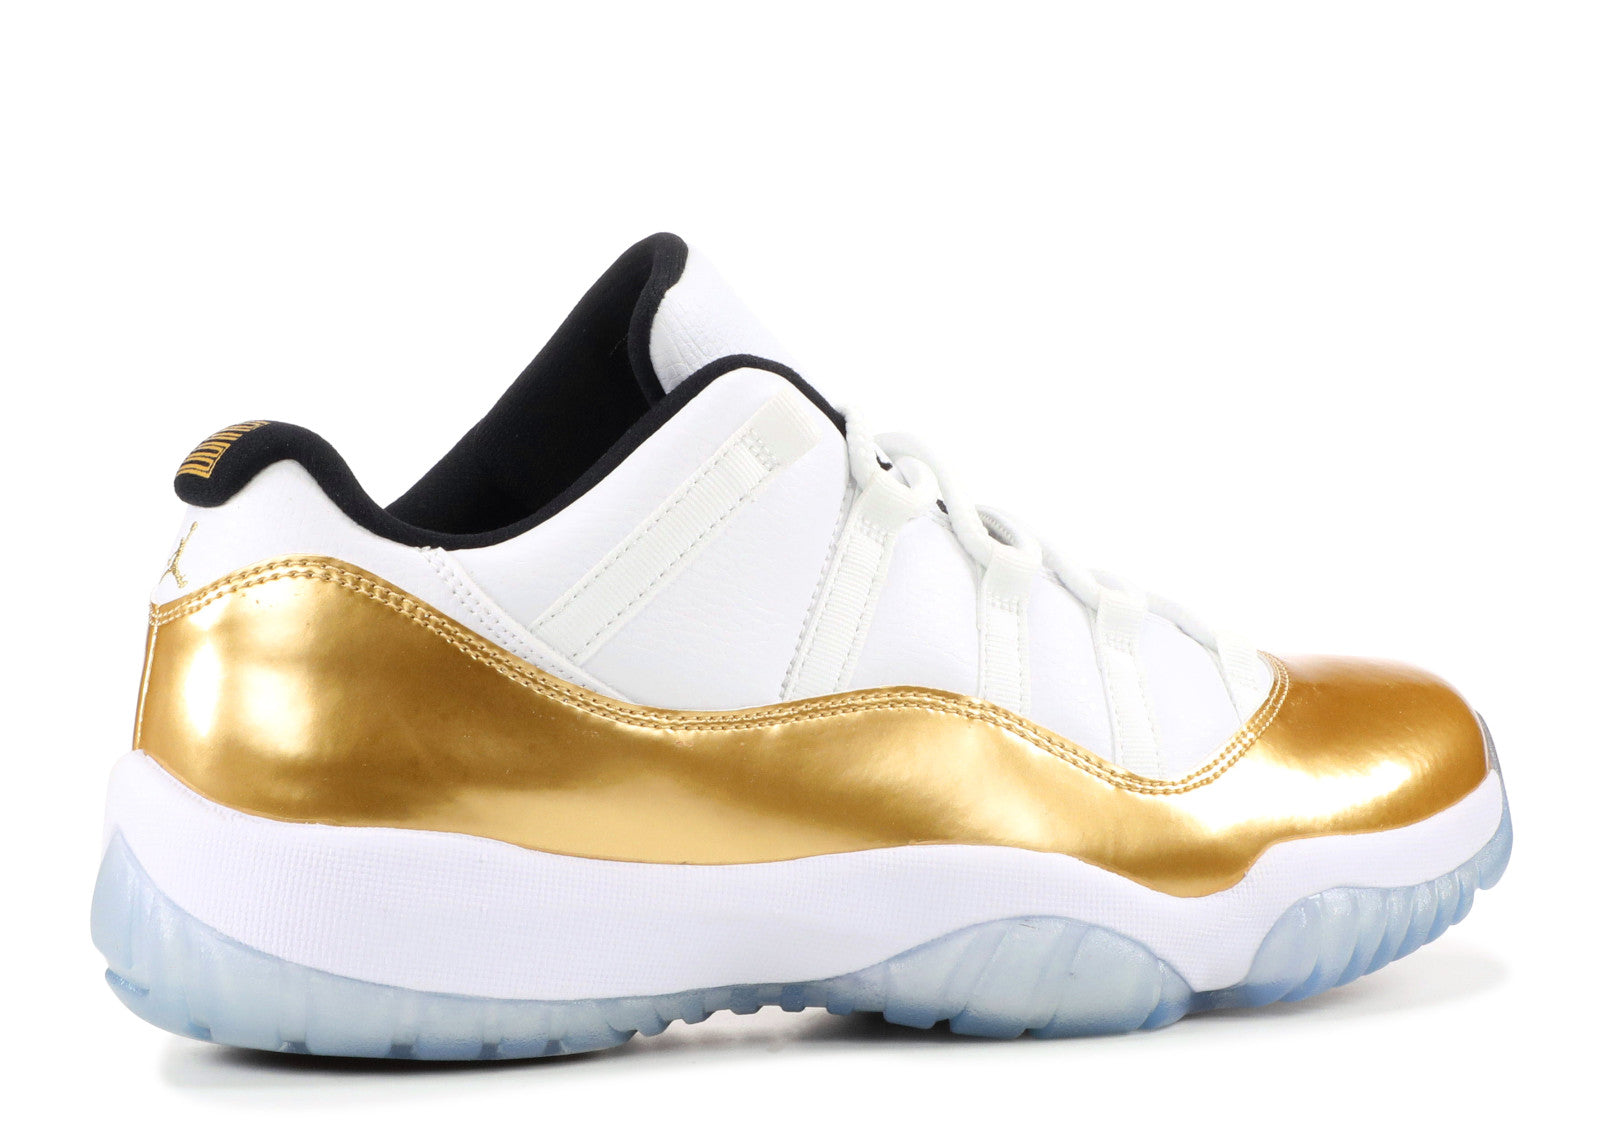 89d1107697b8 AIR JORDAN 11 RETRO LOW